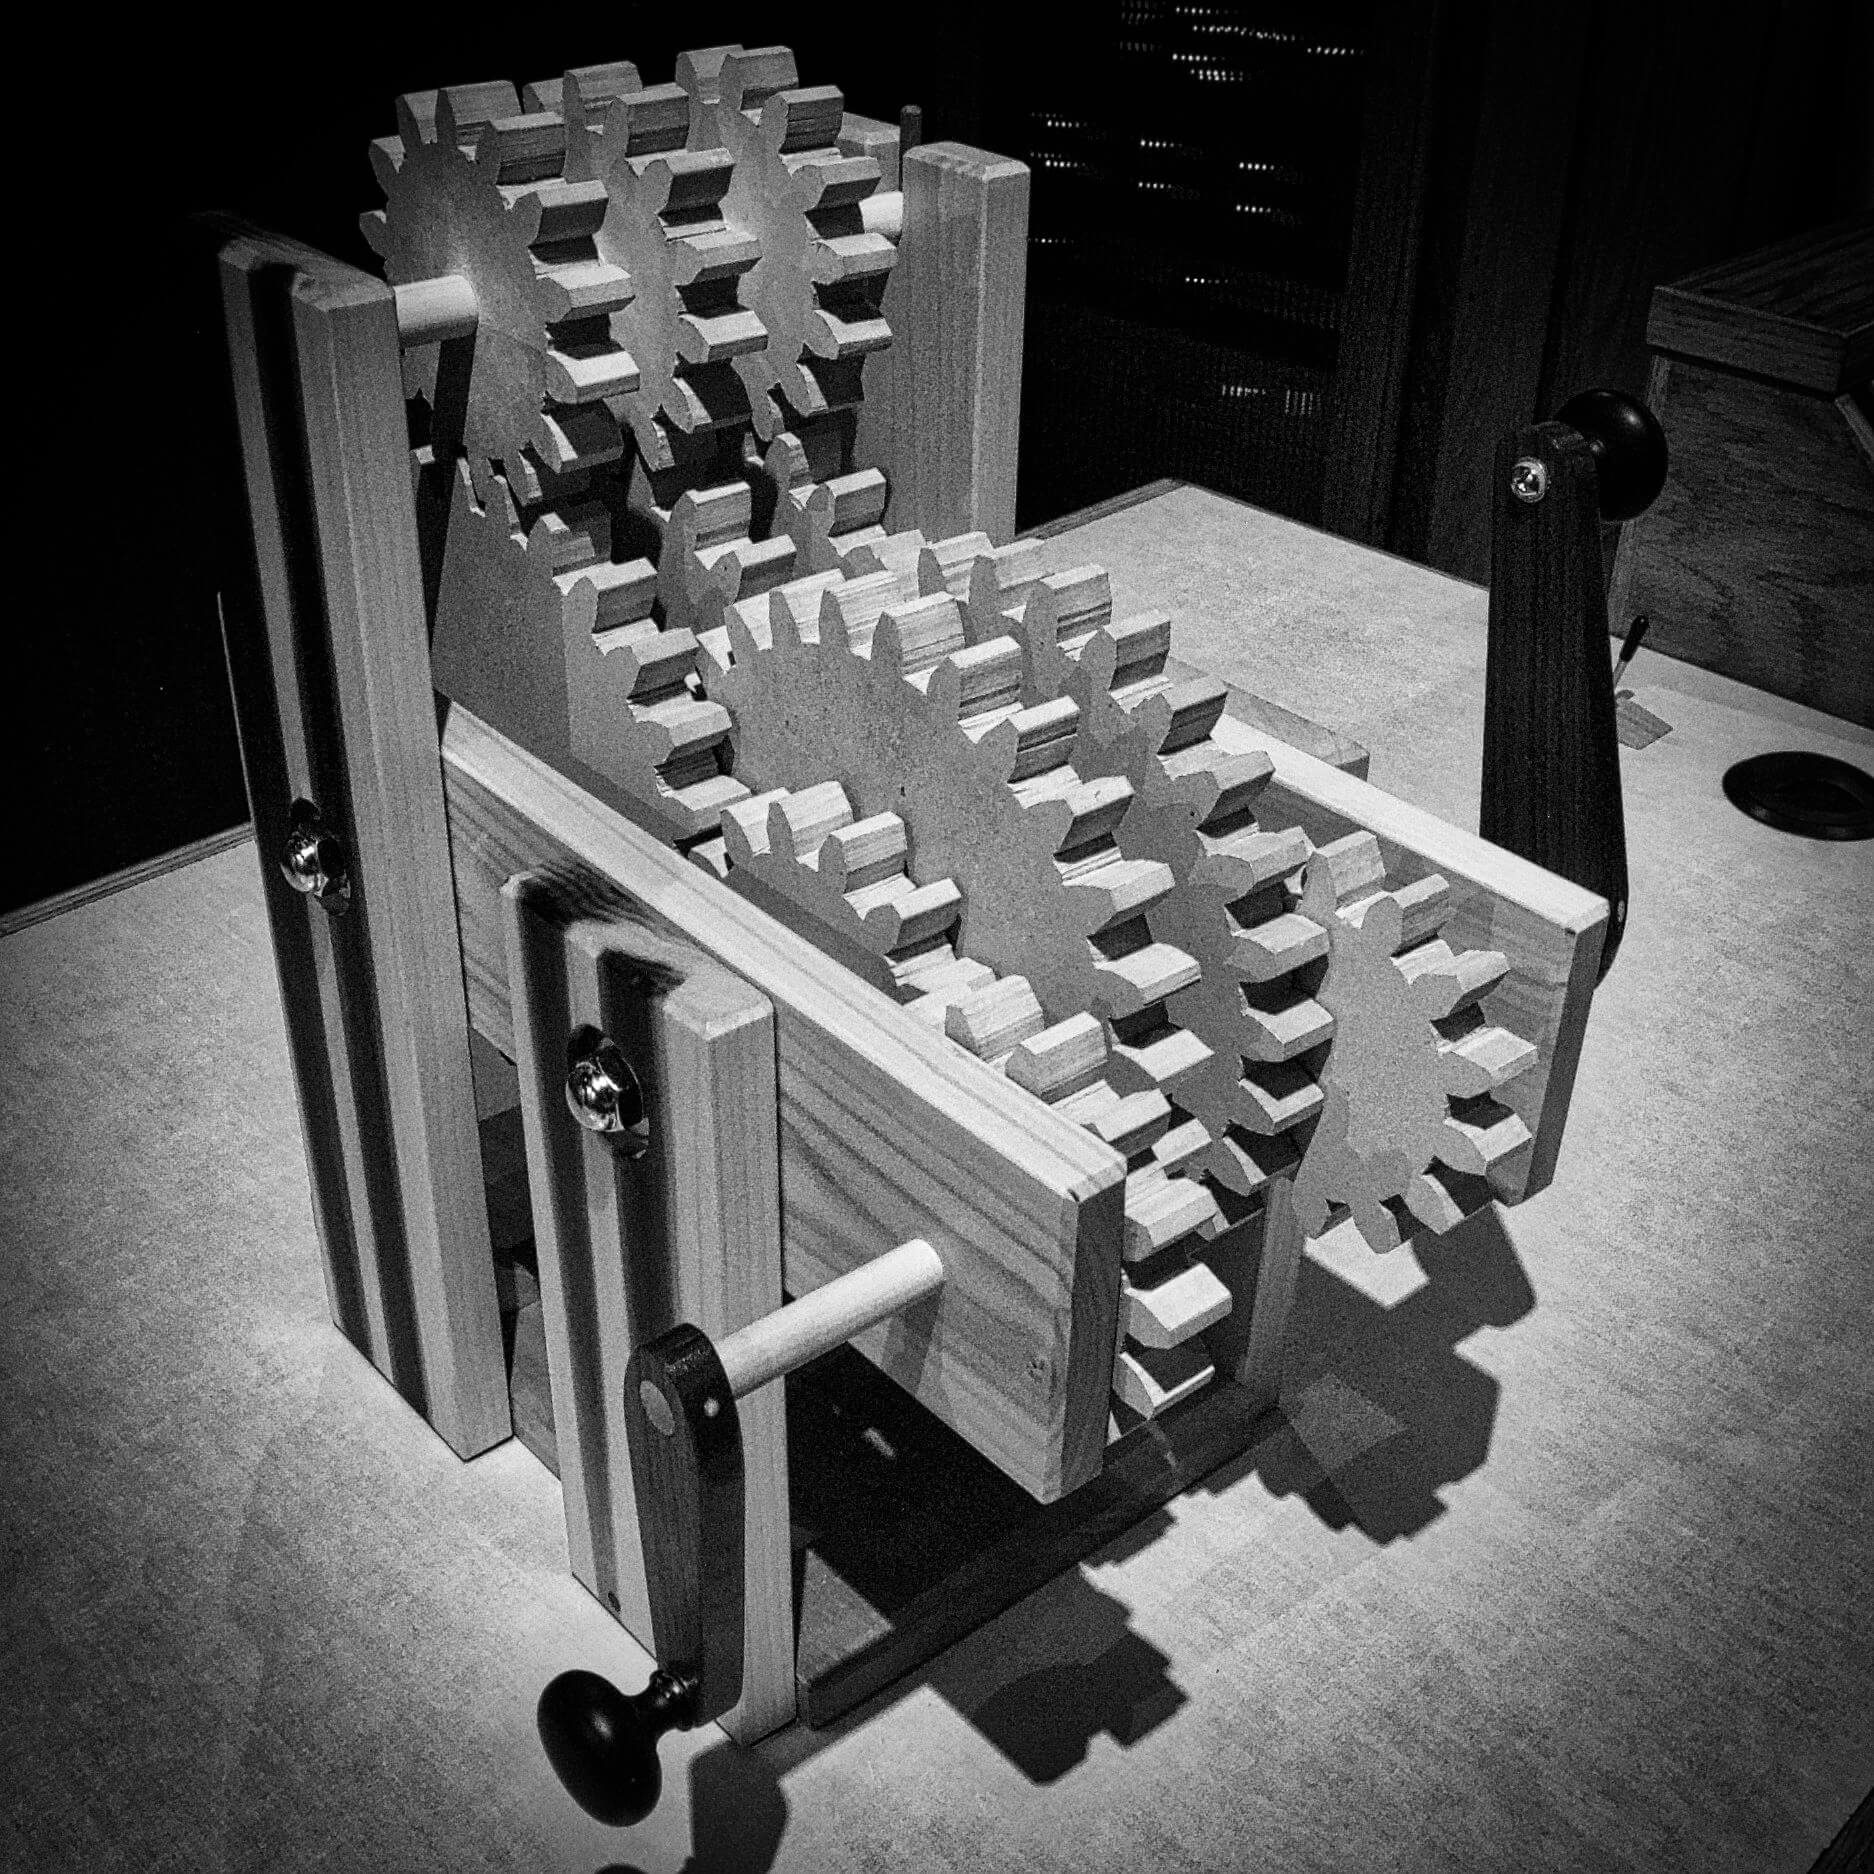 Gear Train image in black and white